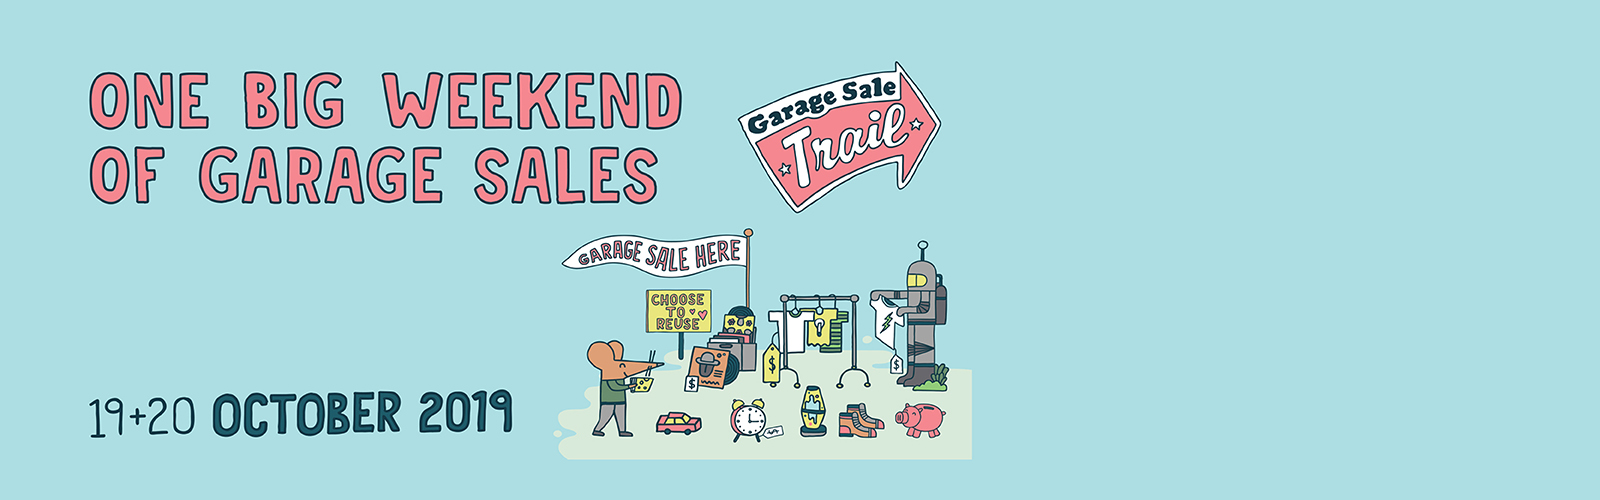 Dubbo Regional Council is bringing Australia's biggest community and sustainability event, Garage Sale Trail, to the local area this October.